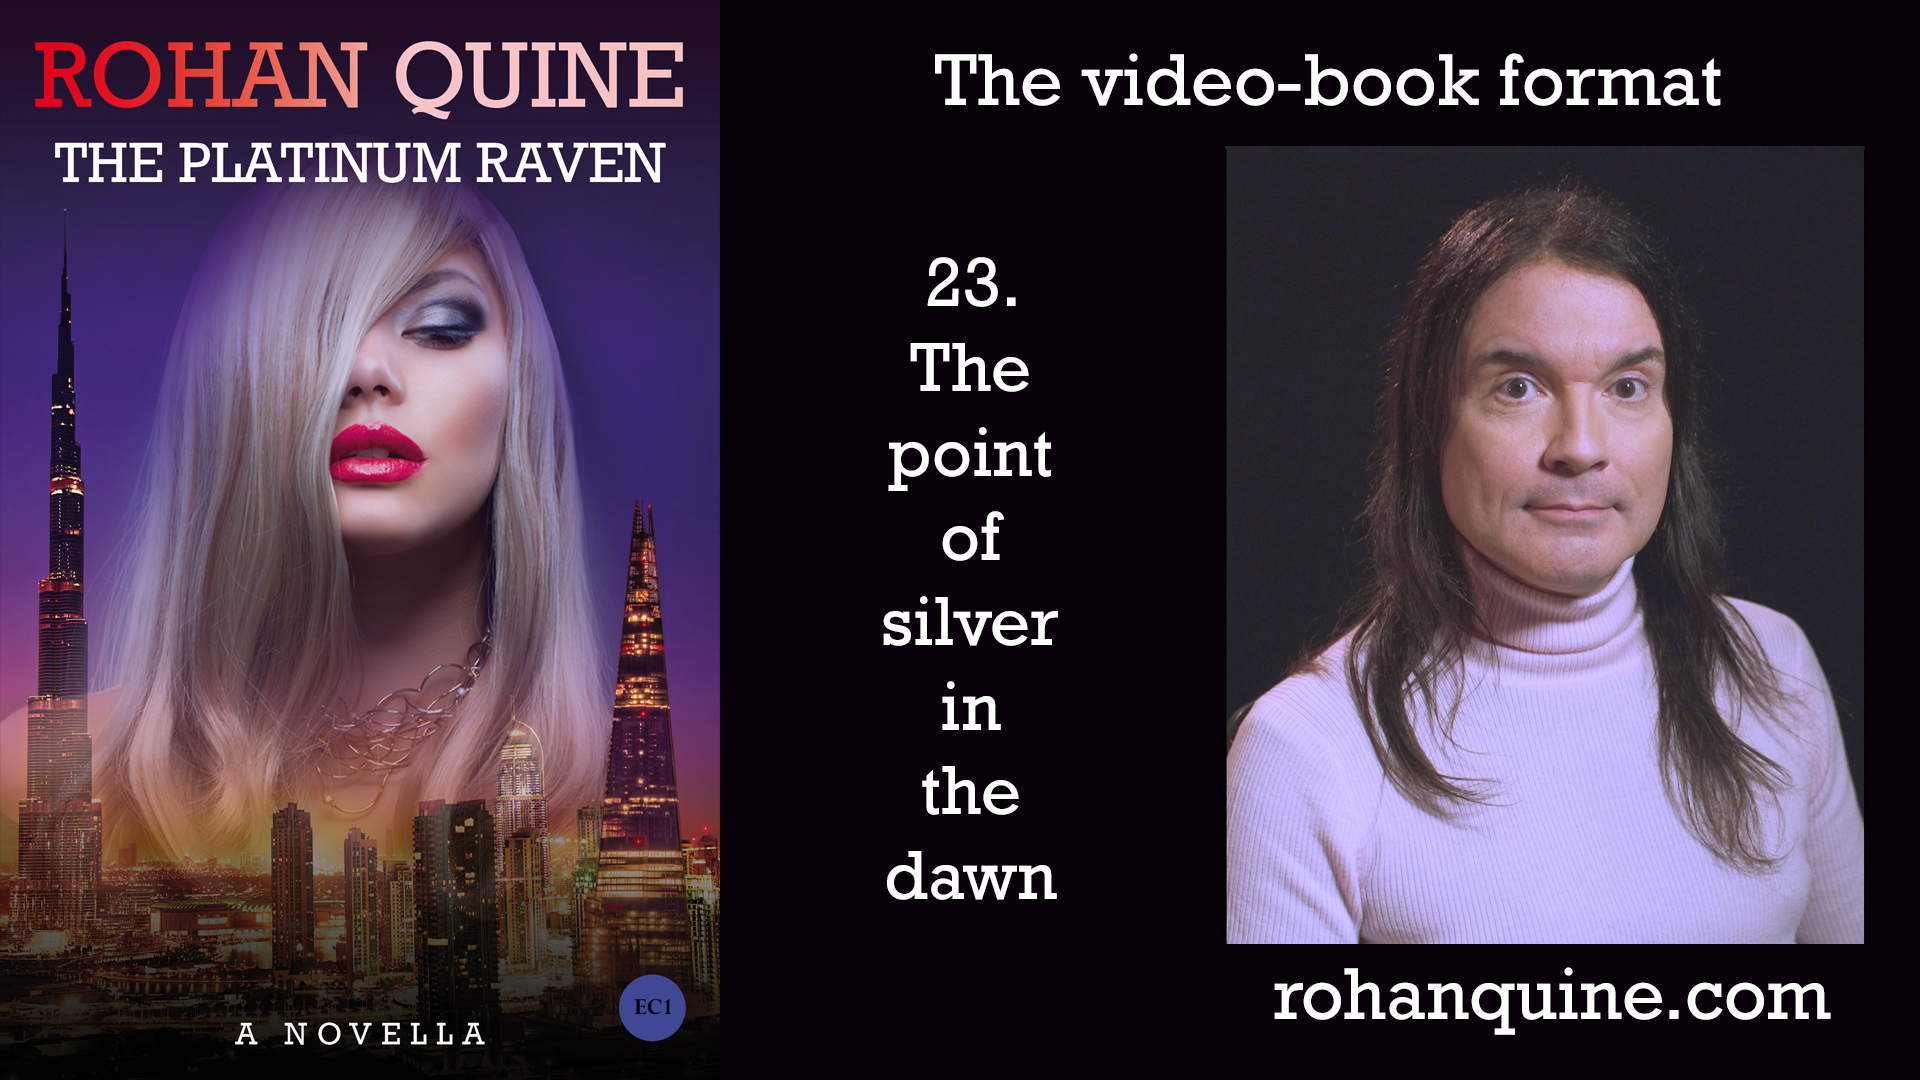 THE PLATINUM RAVEN by Rohan Quine - video-book format - chapter 23